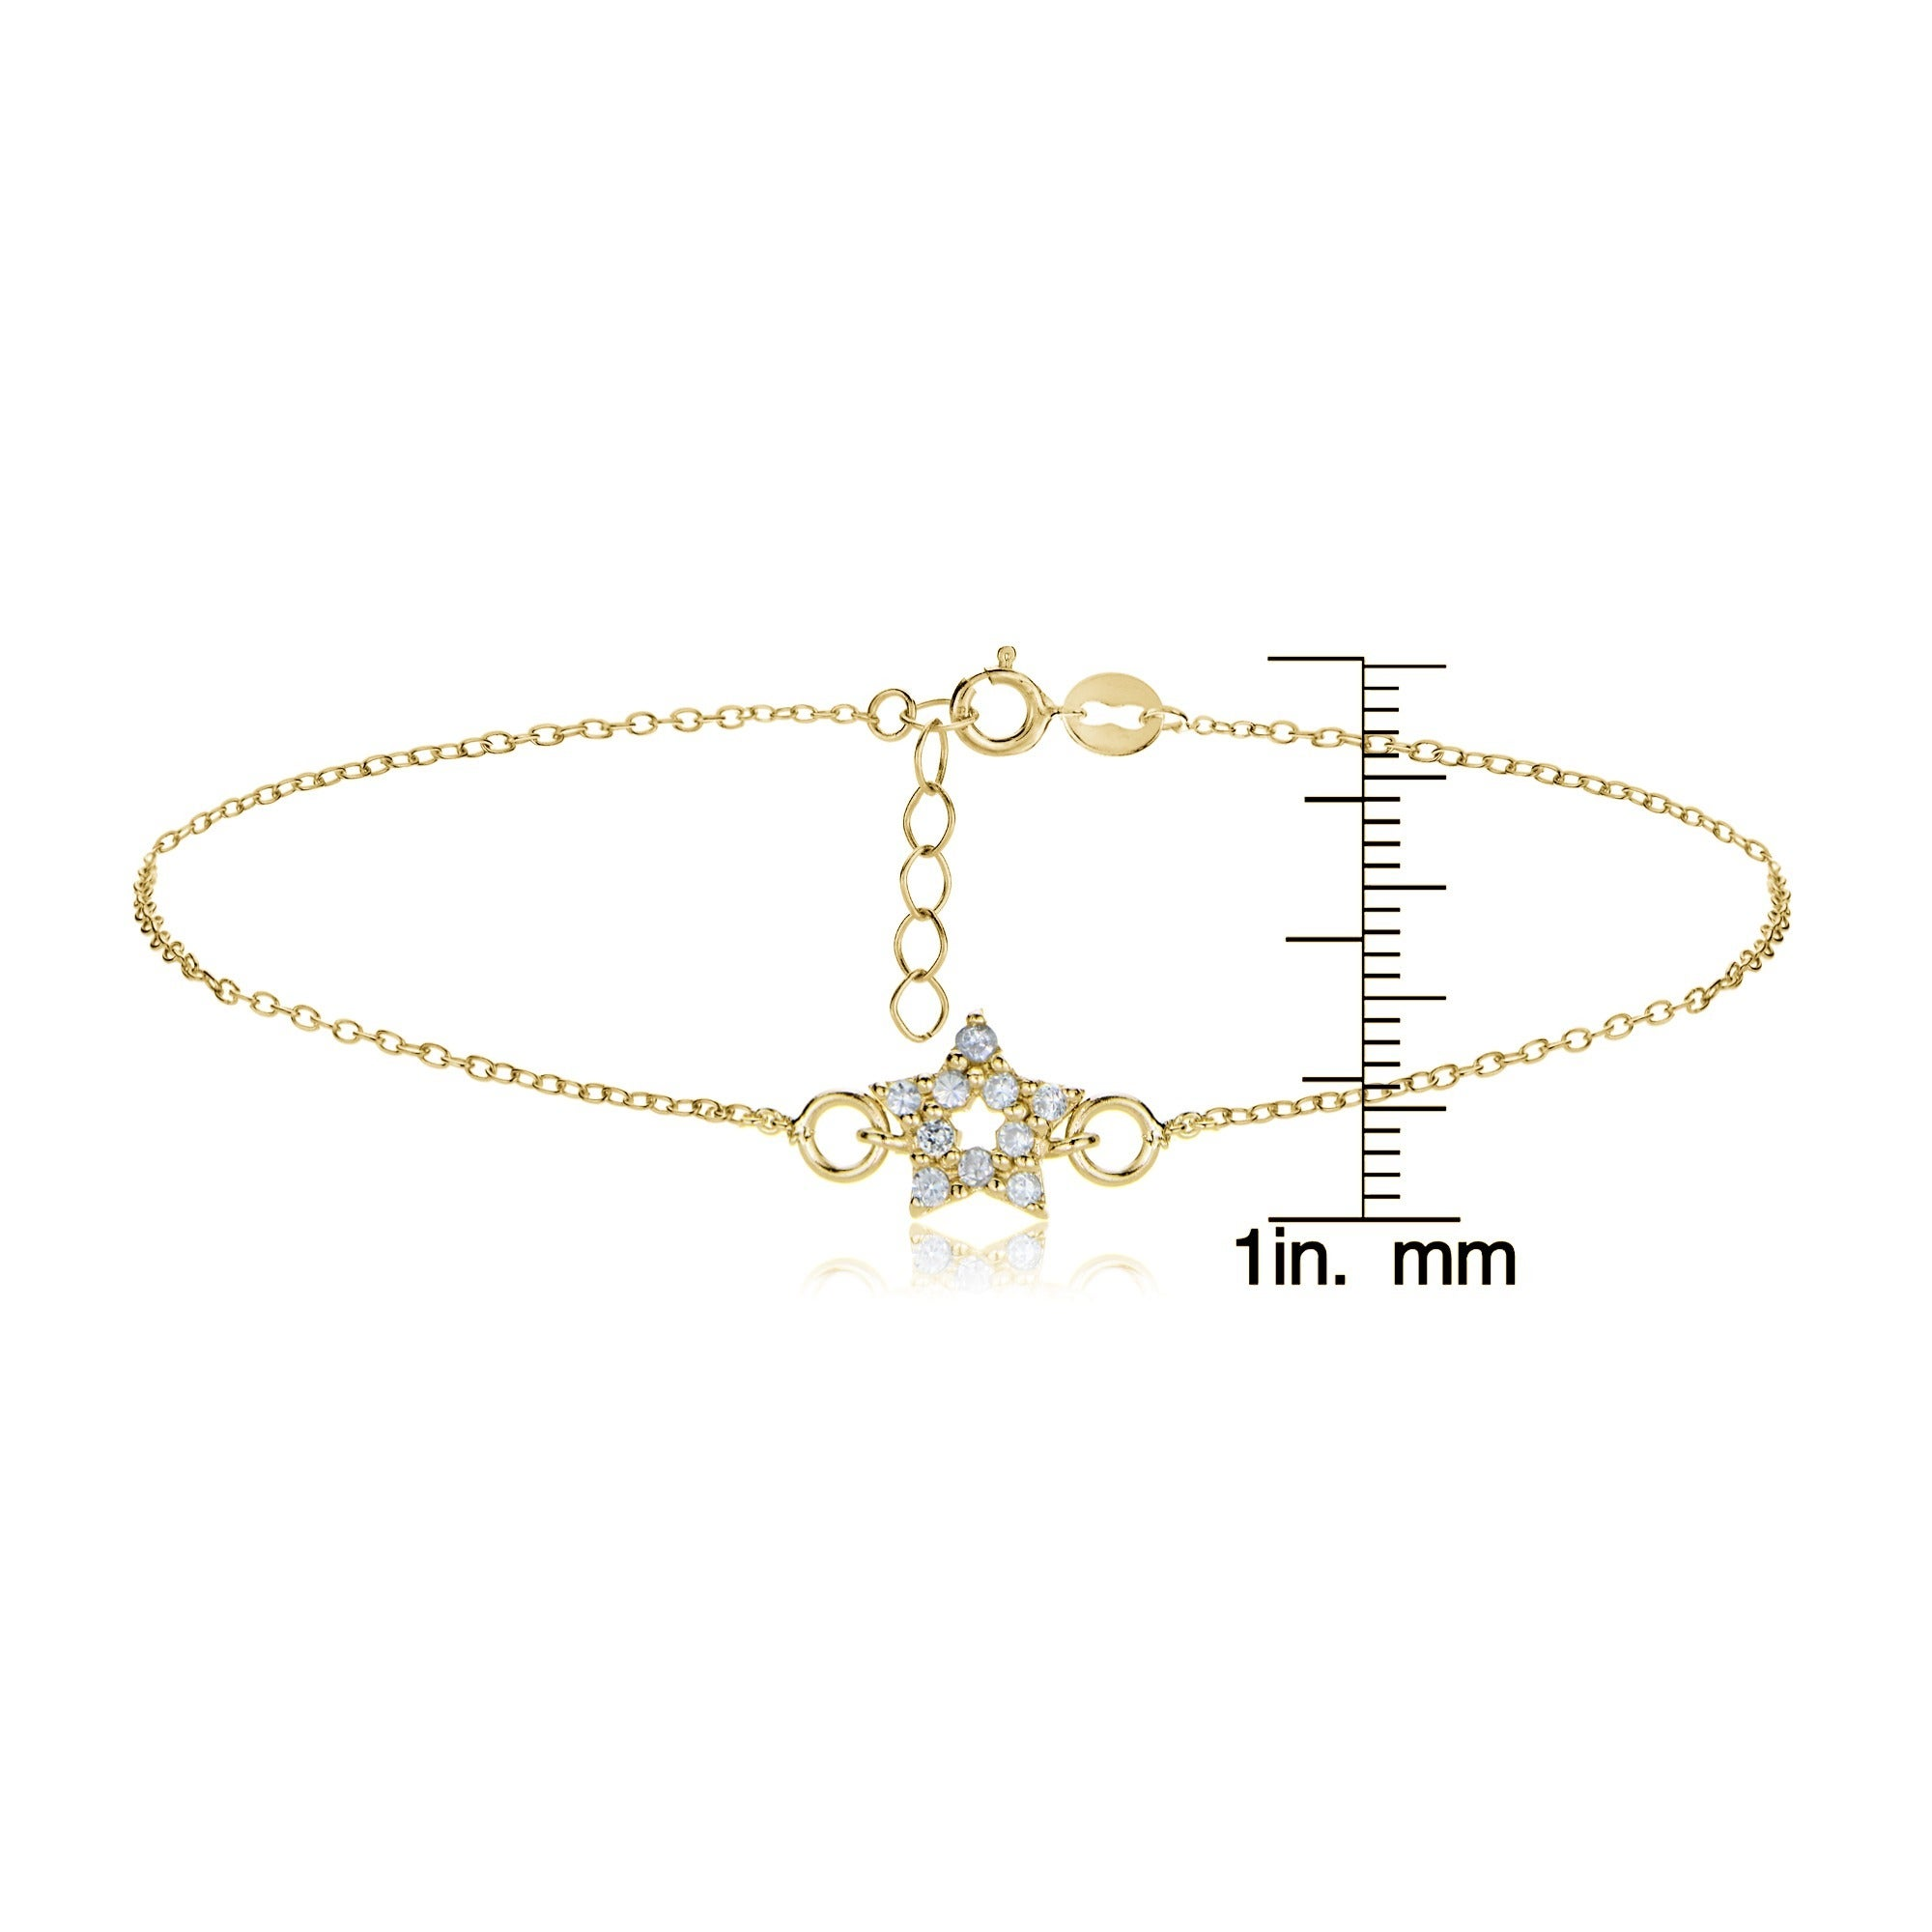 double anklet figaro at detail palmbeach jewelry link cfm d heart gold products i